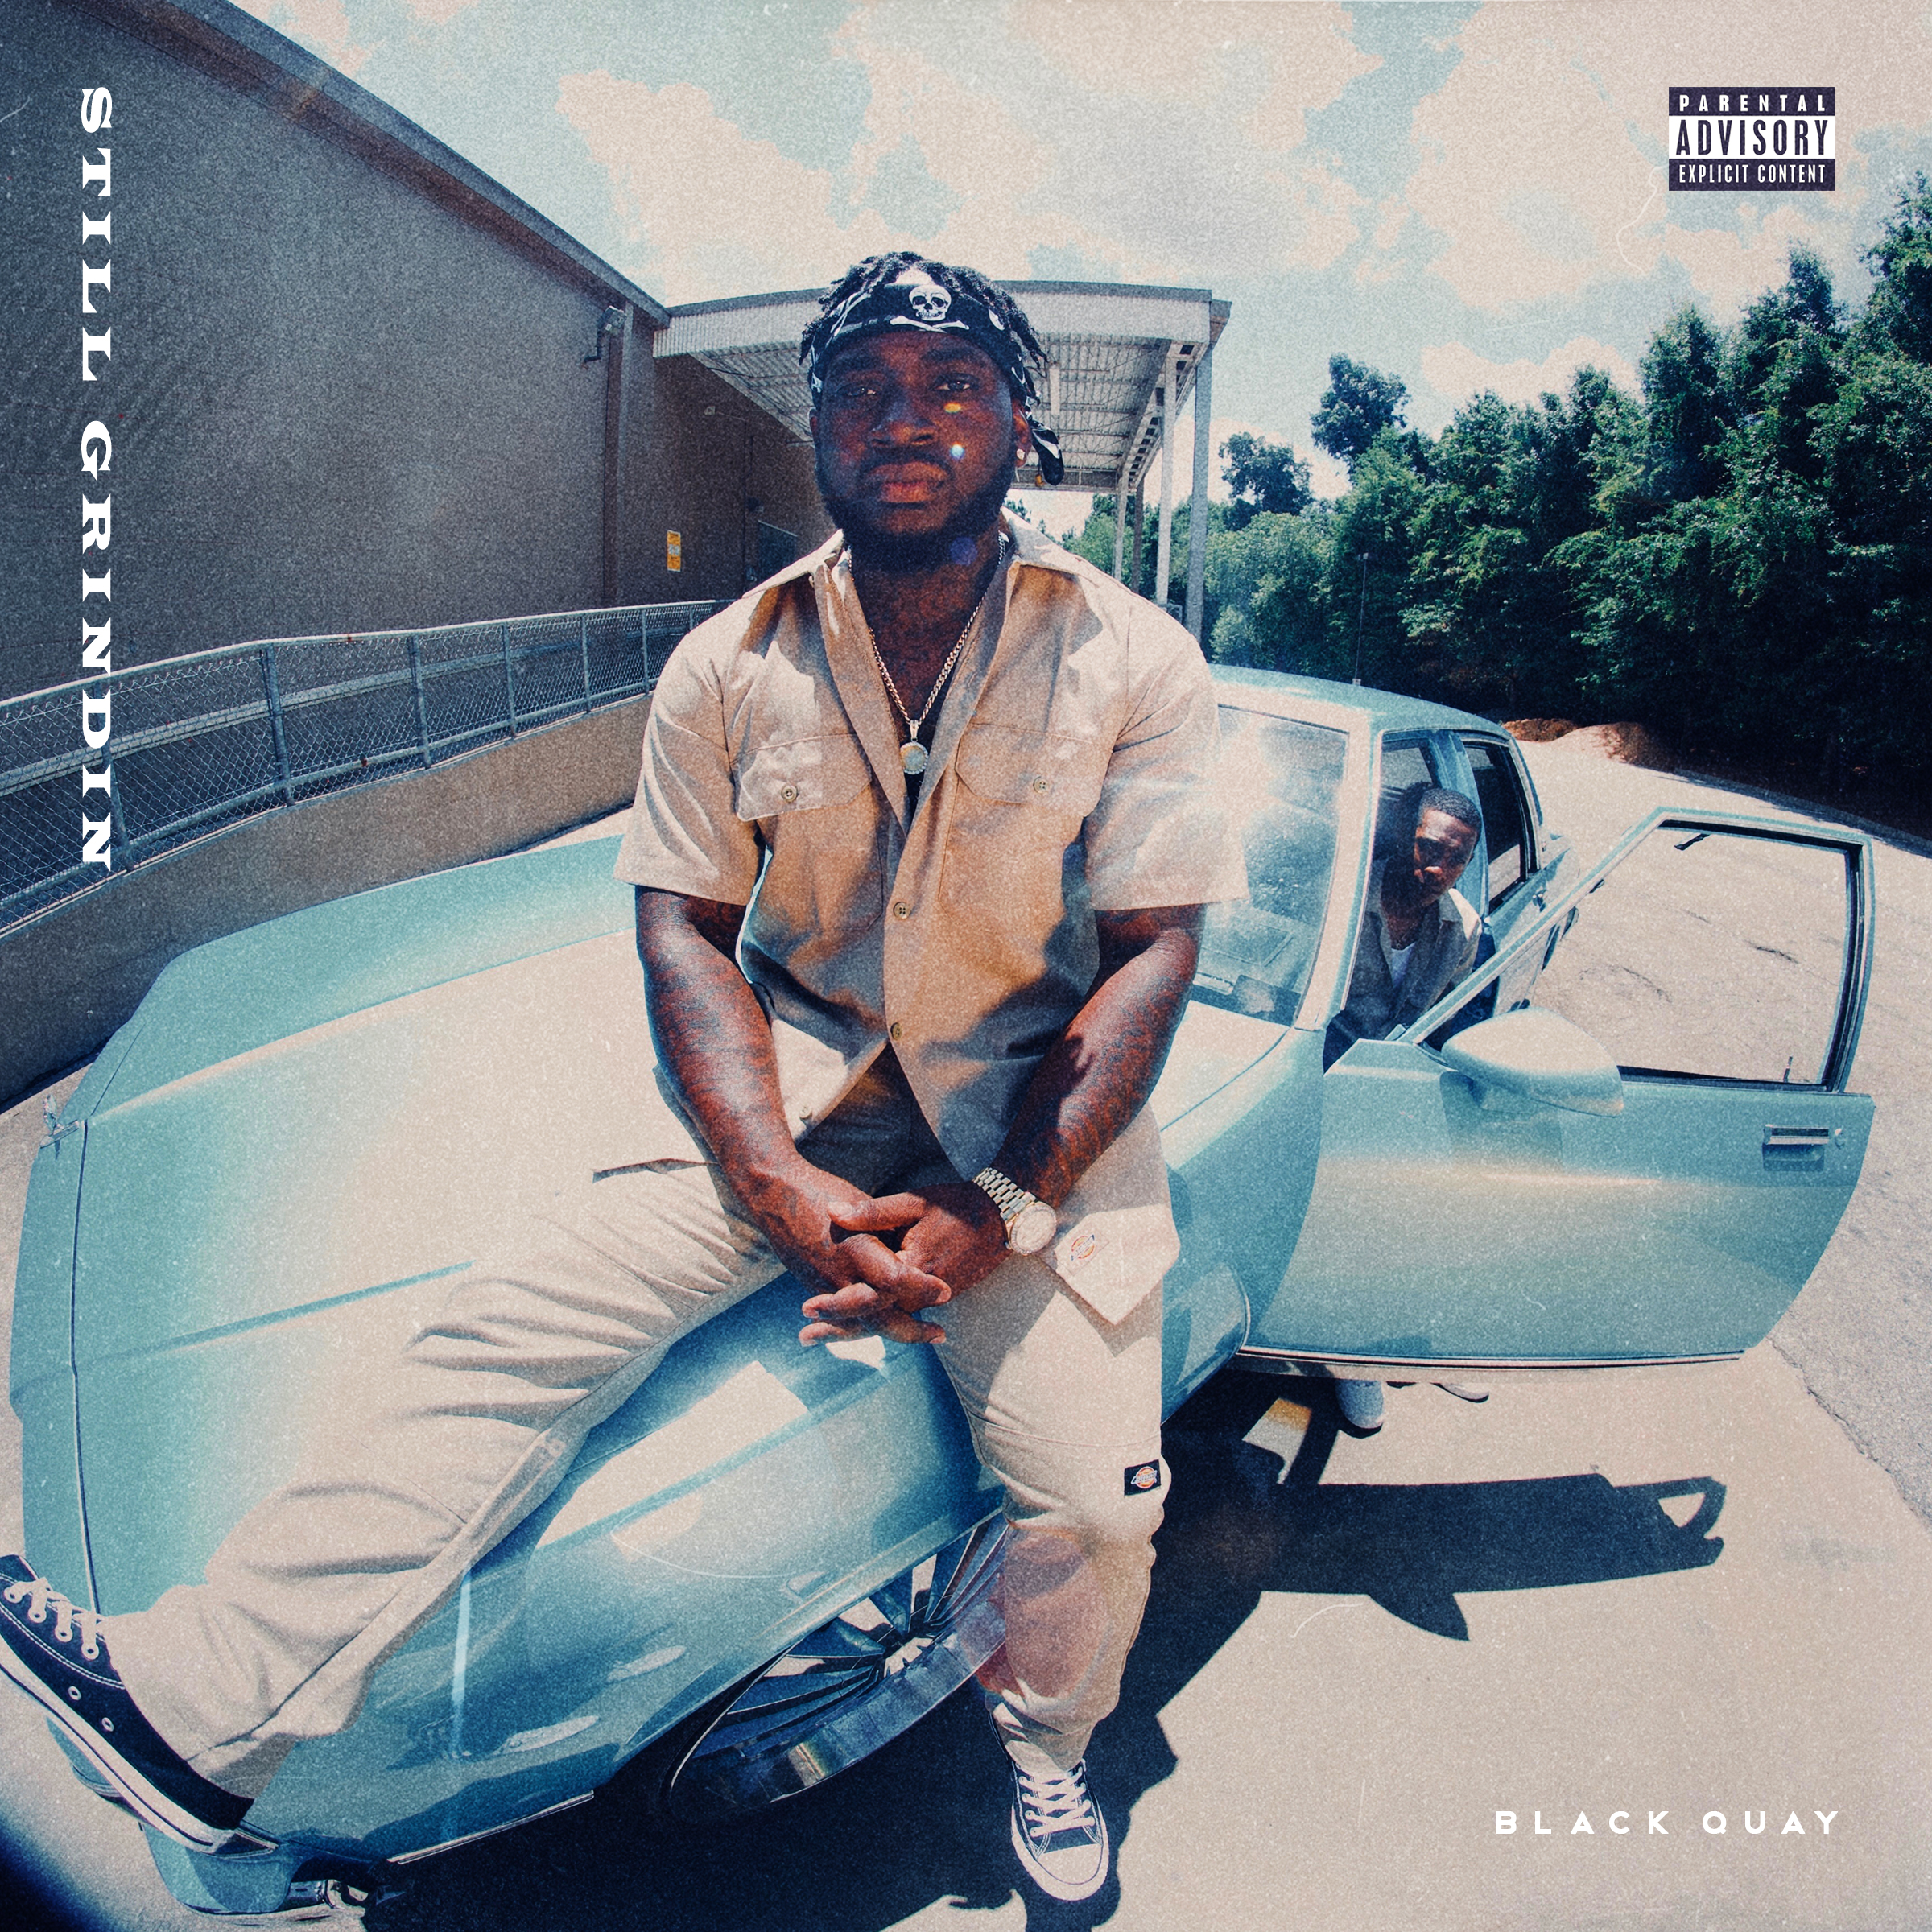 (New Exclusive Interview) Atlanta Rapper Black Quay Talks New Project With Vintage Media Group  